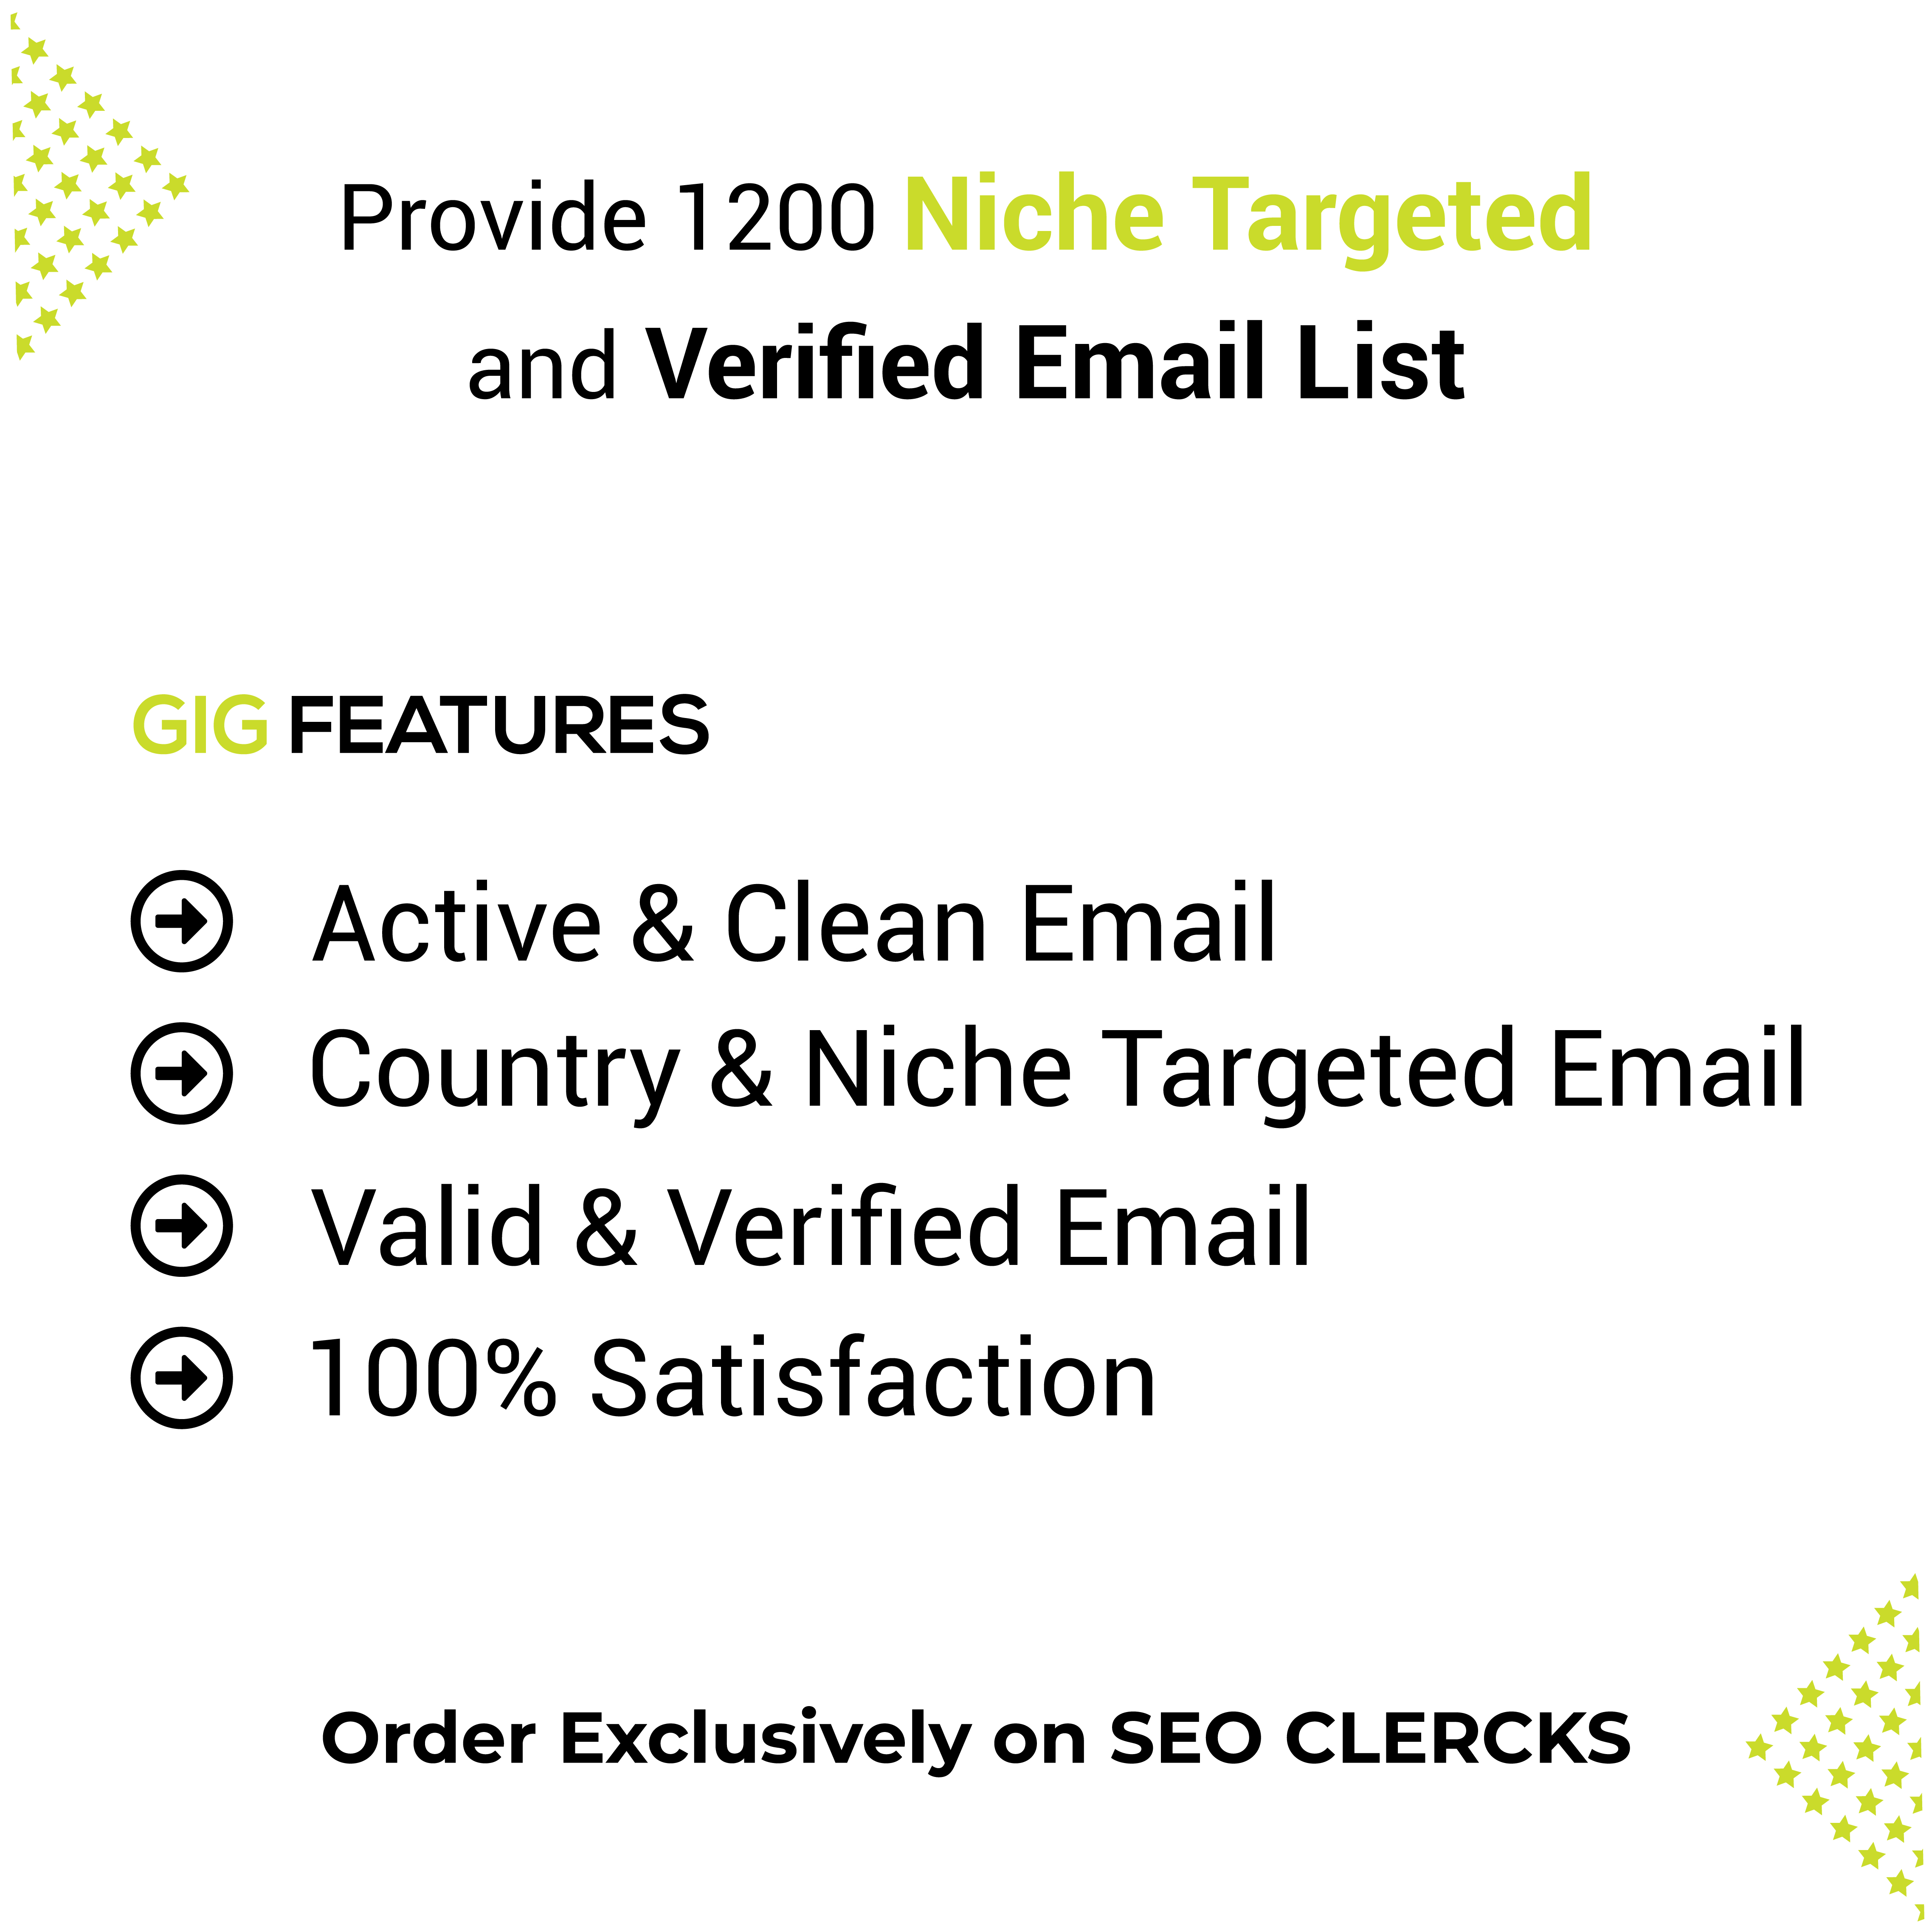 I will collect 1200 verified and niche targeted email list